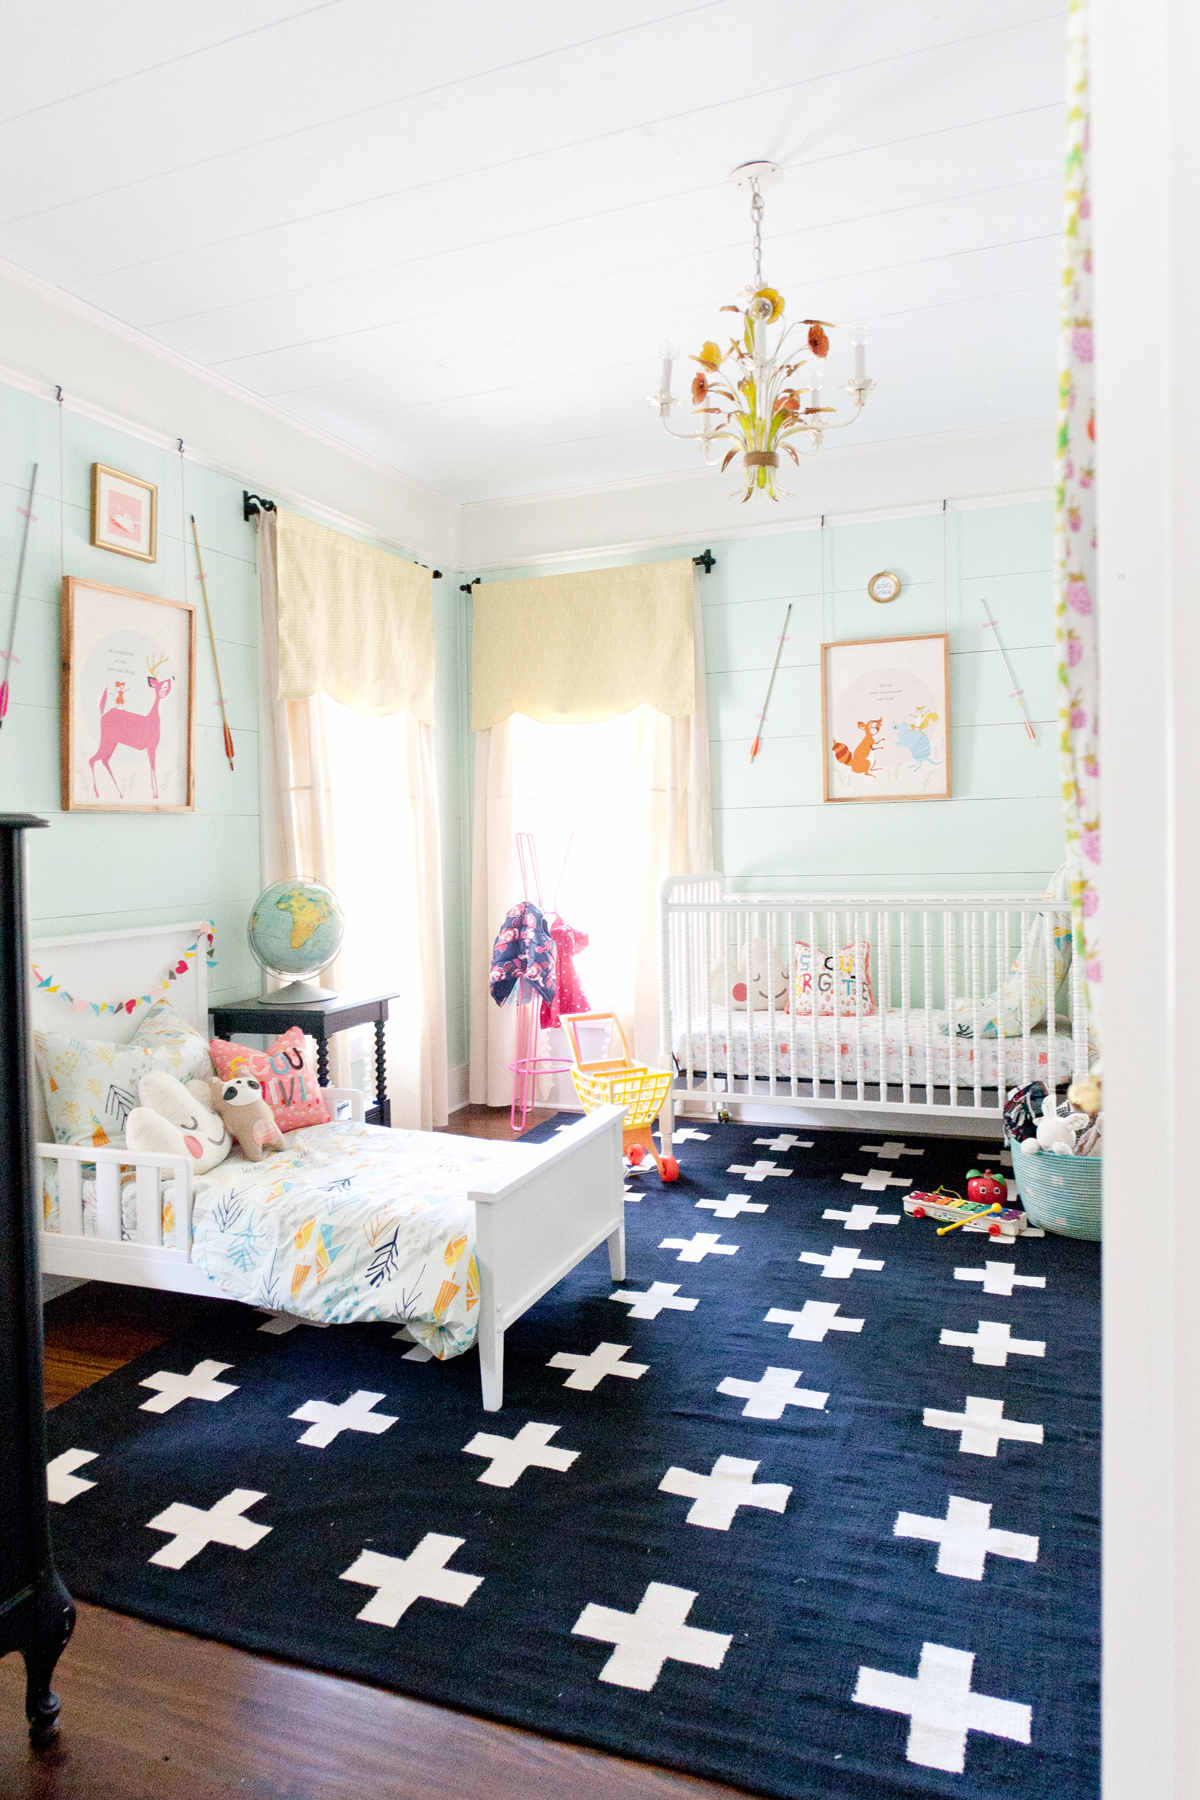 Shared room inspiration lay baby lay lay baby lay - Children bedrooms ...